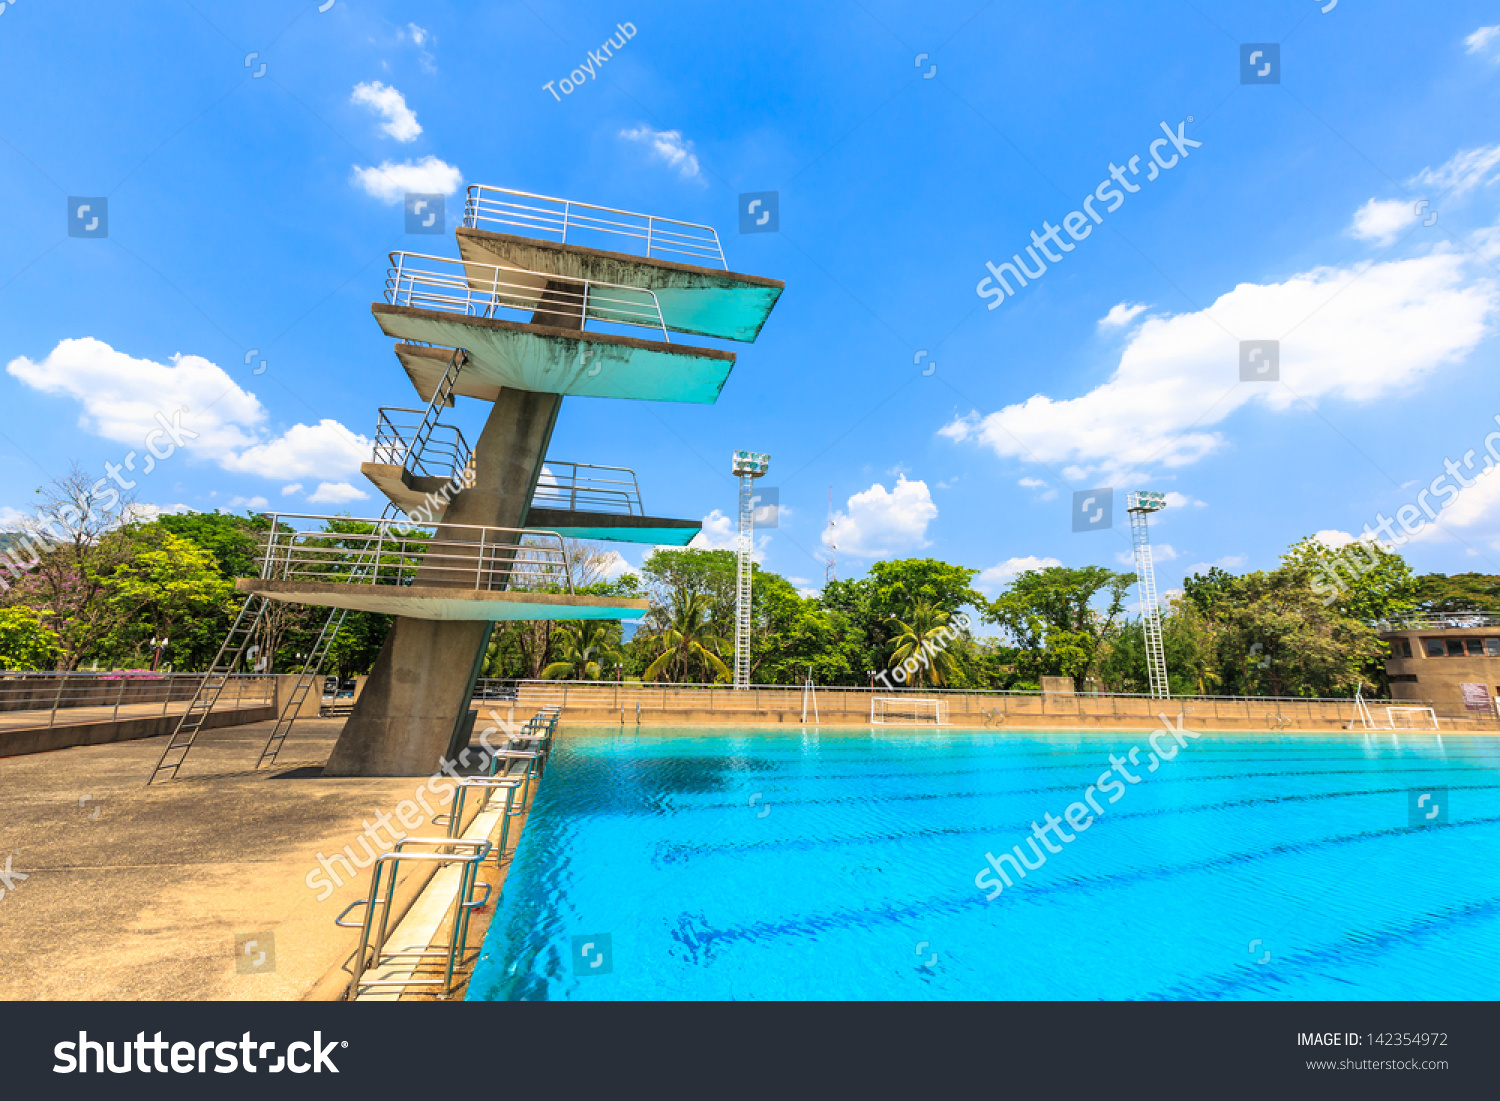 High Diving Board Public Swimming Pool Stock Photo Edit Now 142354972